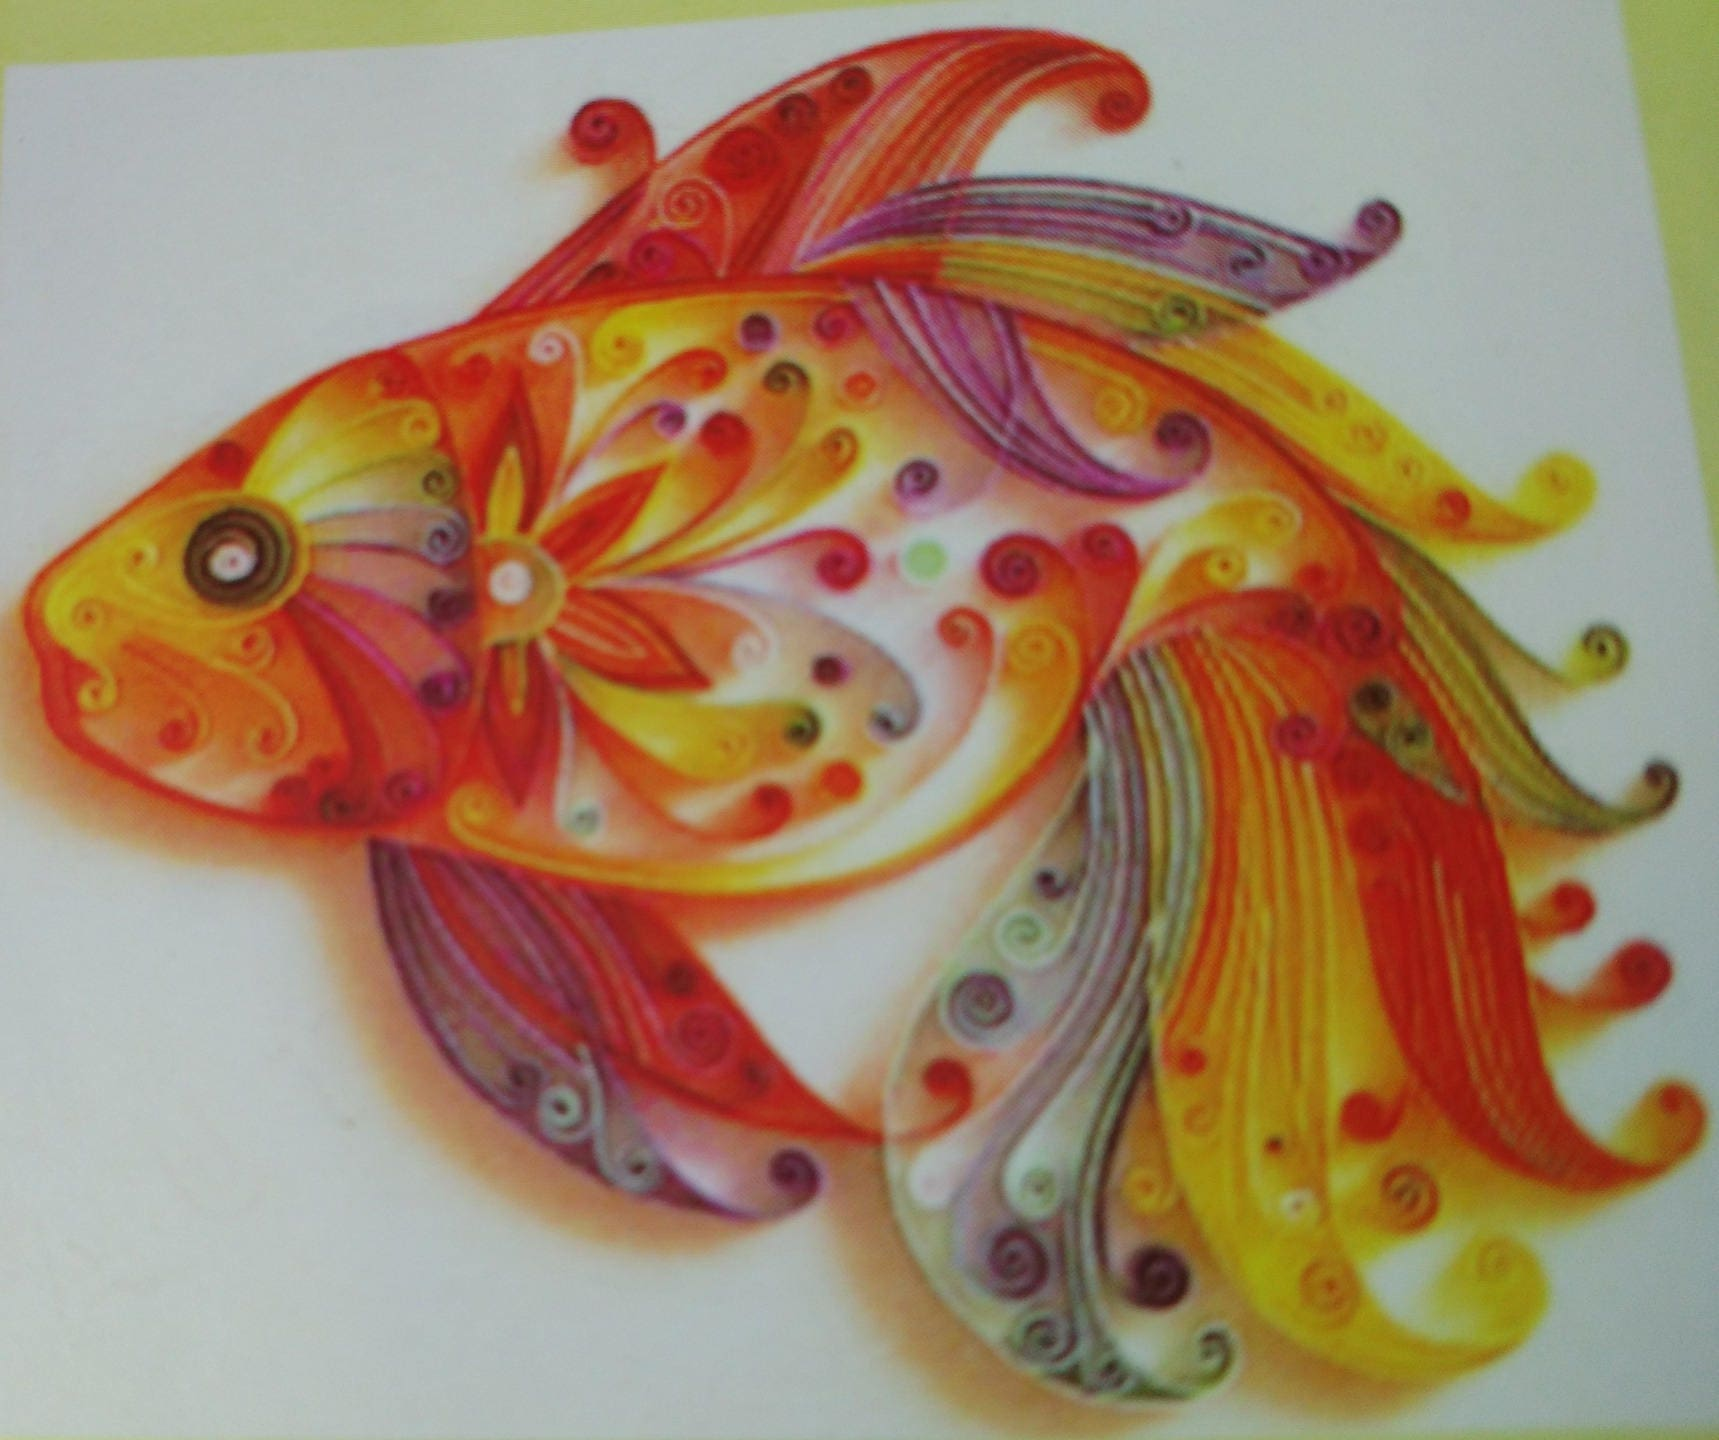 listing for quilling, model paperole fish, koi carp from ...